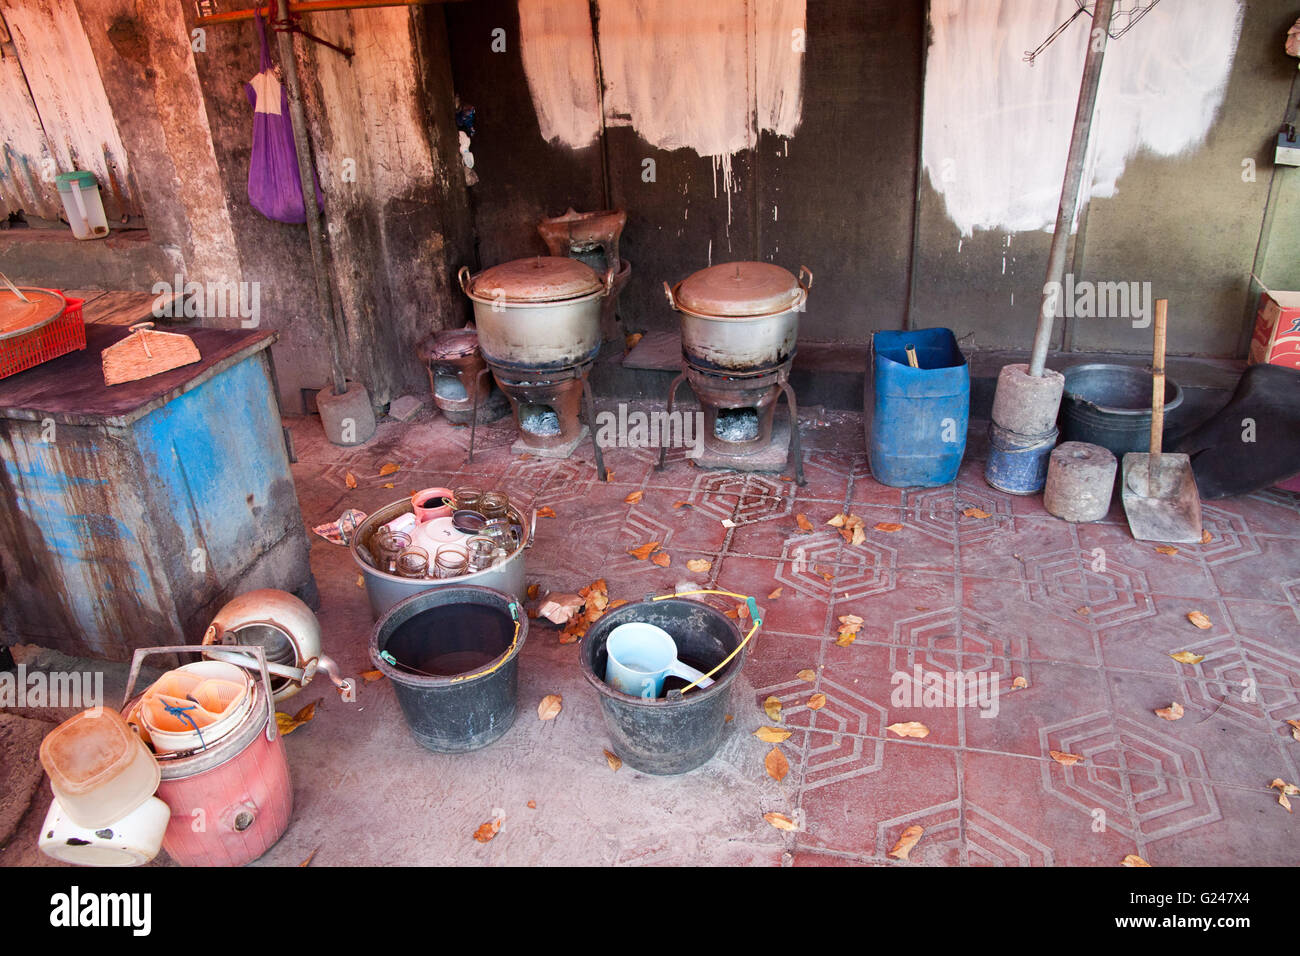 Typical Indonesian street kitchen equipment for cooking delicous food. - Stock Image